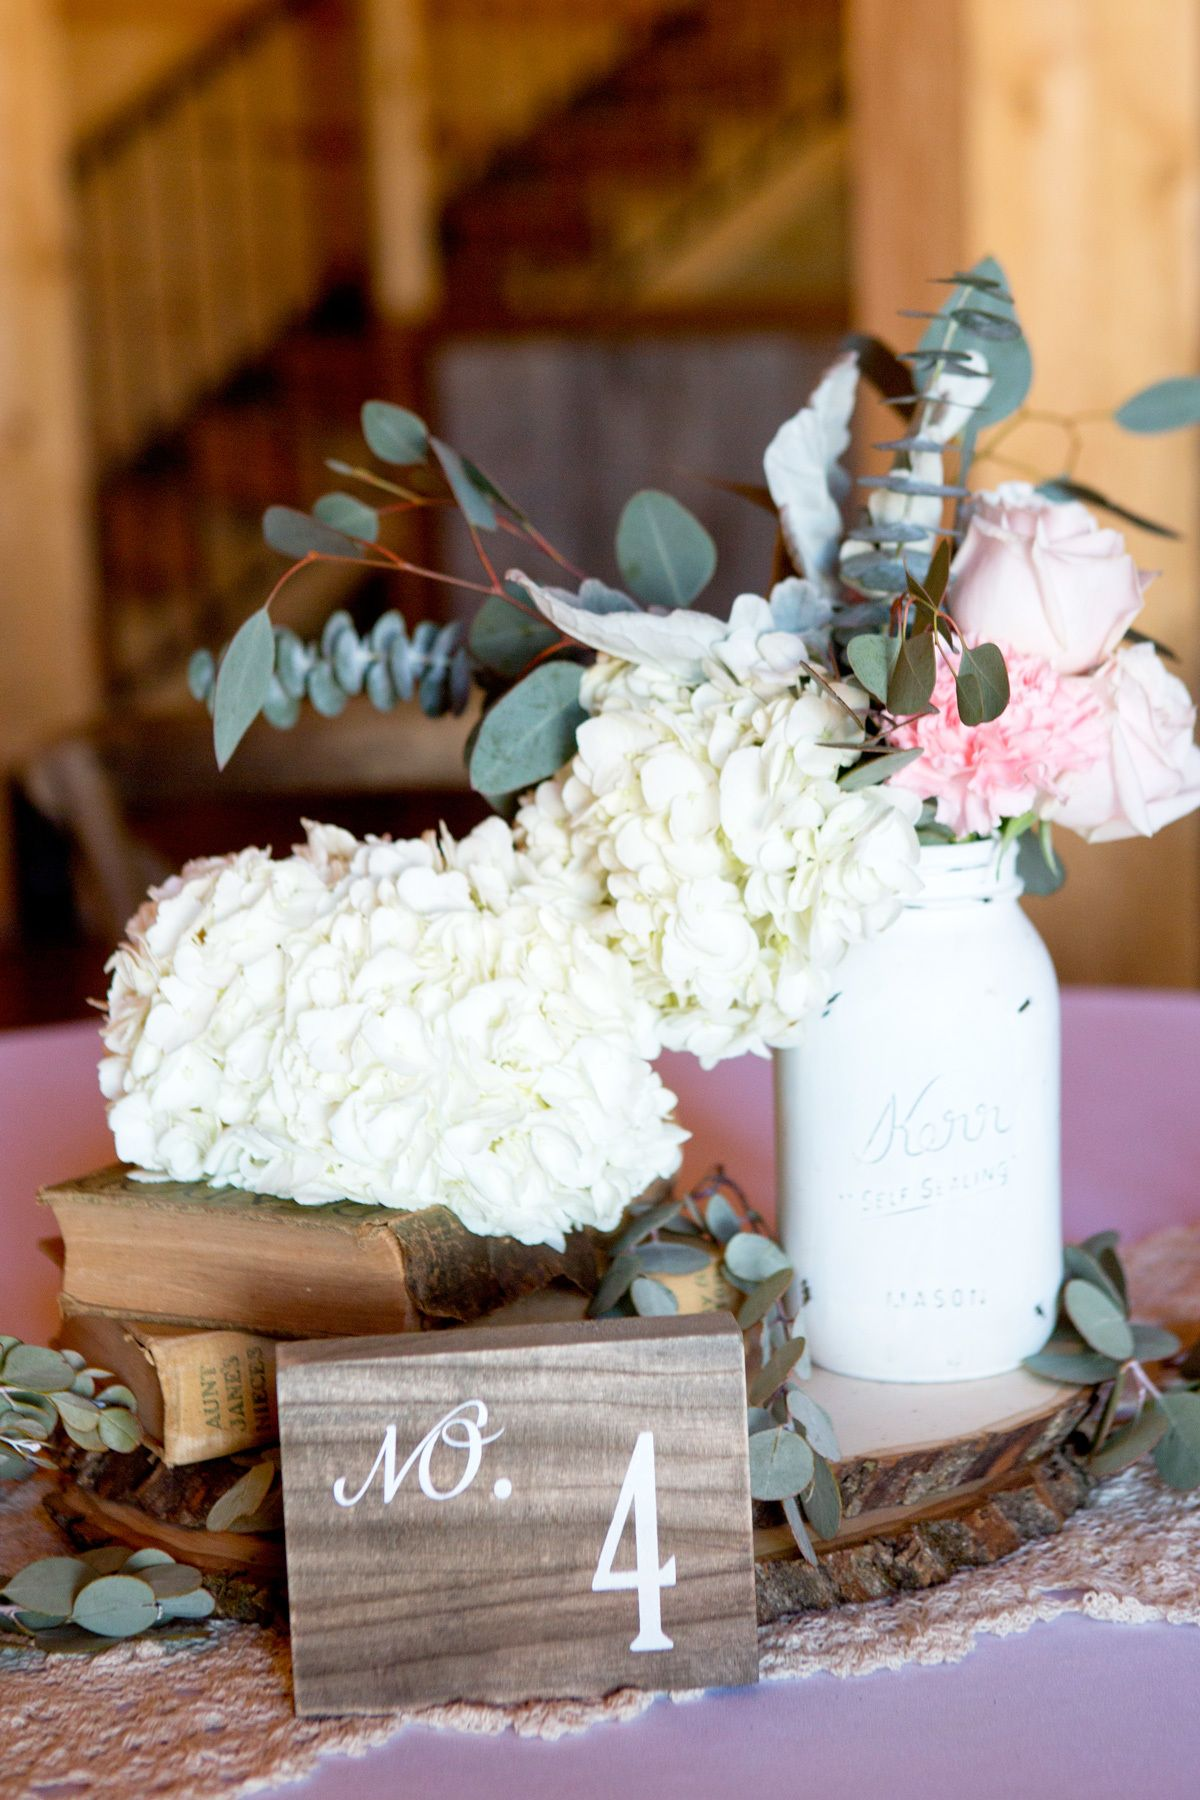 Unique Rustic Barn Wedding Centerpieces